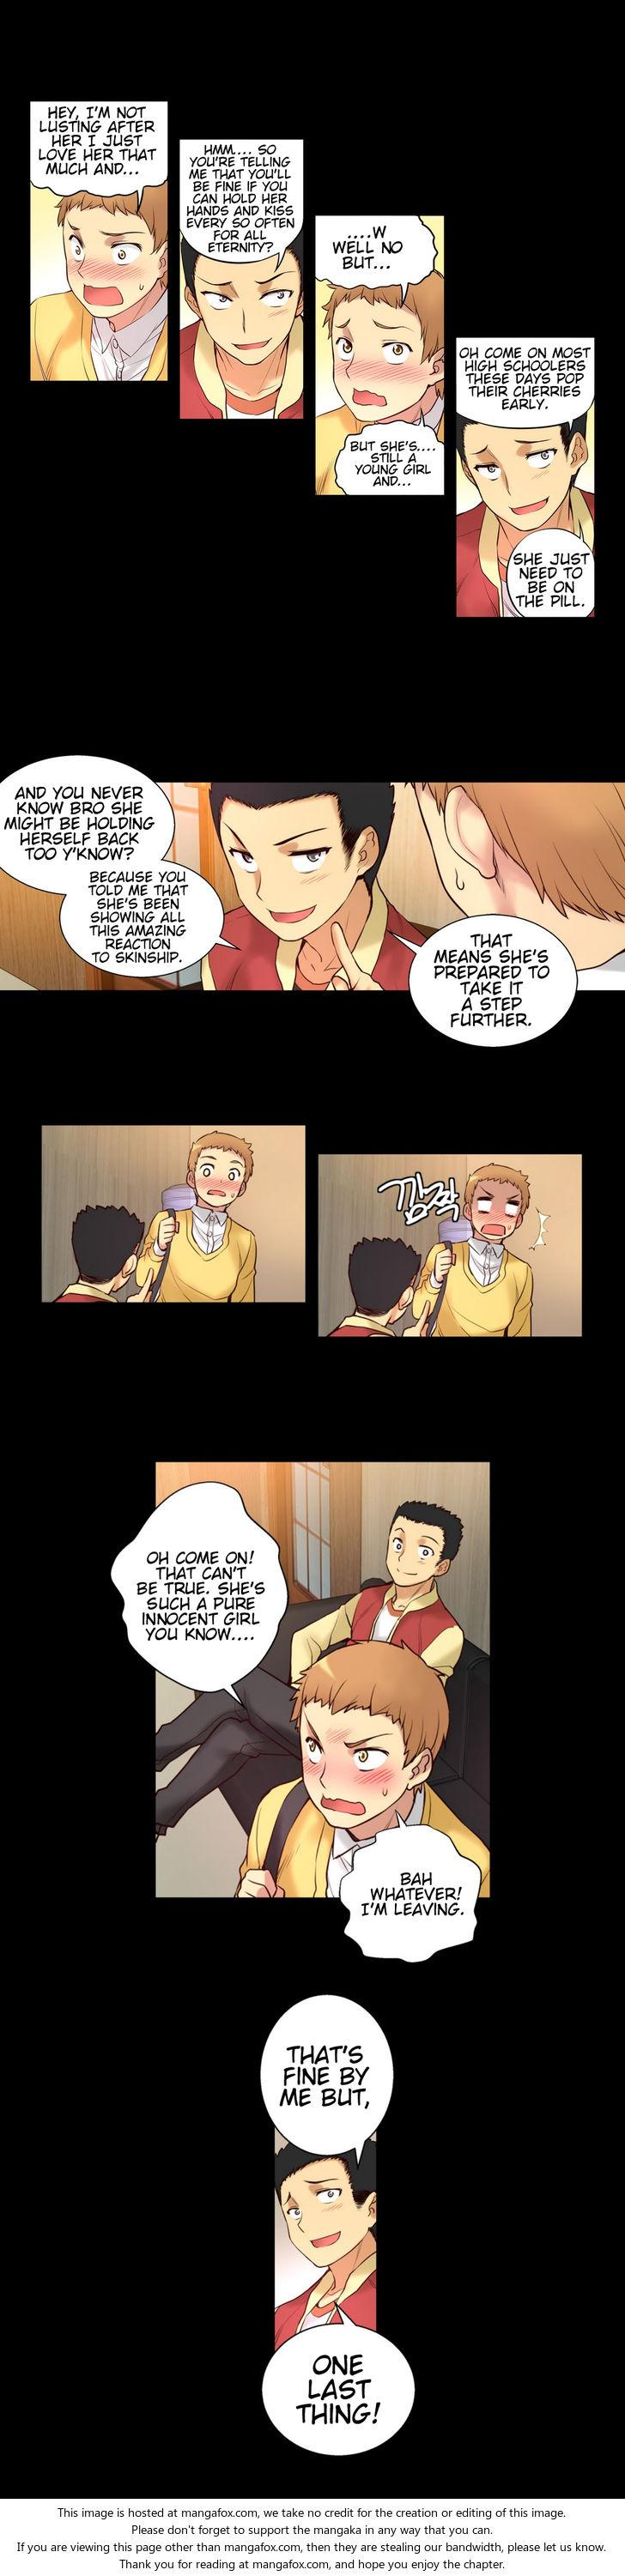 [Donggul Gom] She is Young (English) Part 1/2 97